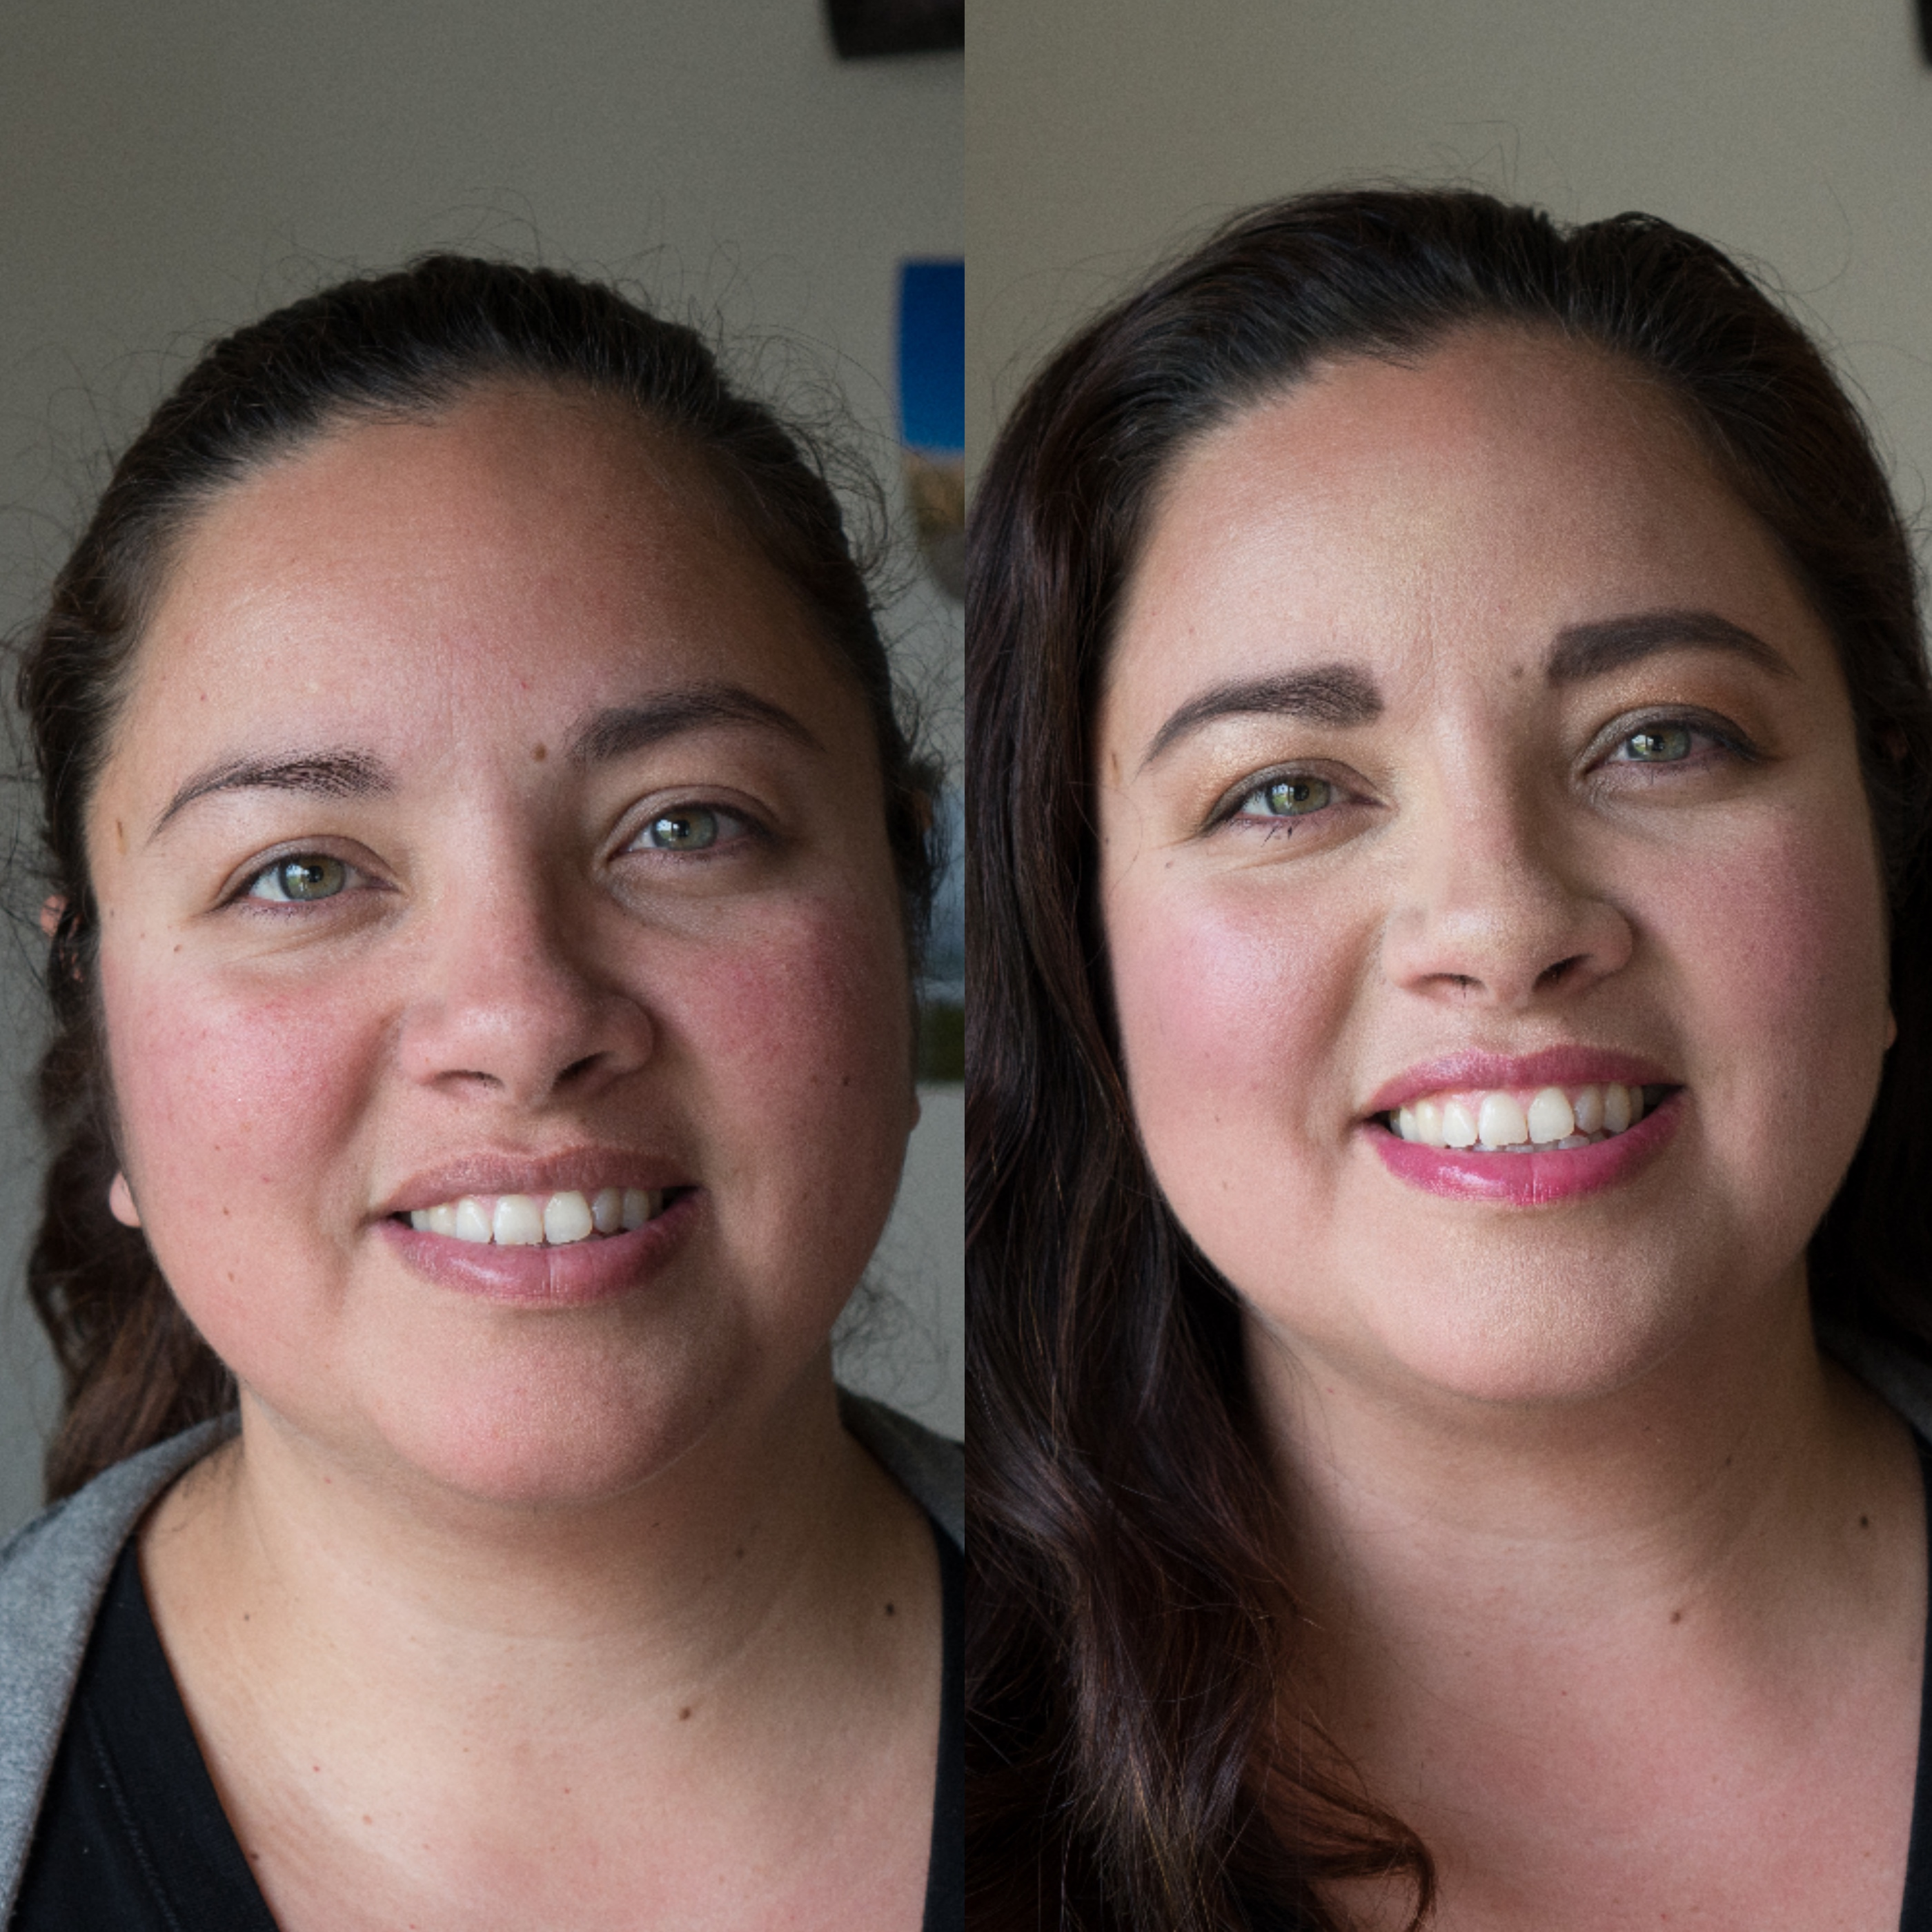 Before and after from mom to wow makeover with Maskcara Beauty Girl on www.maskcarabeautygirl.com, come see how to makeover a beautiful face and what products were used.